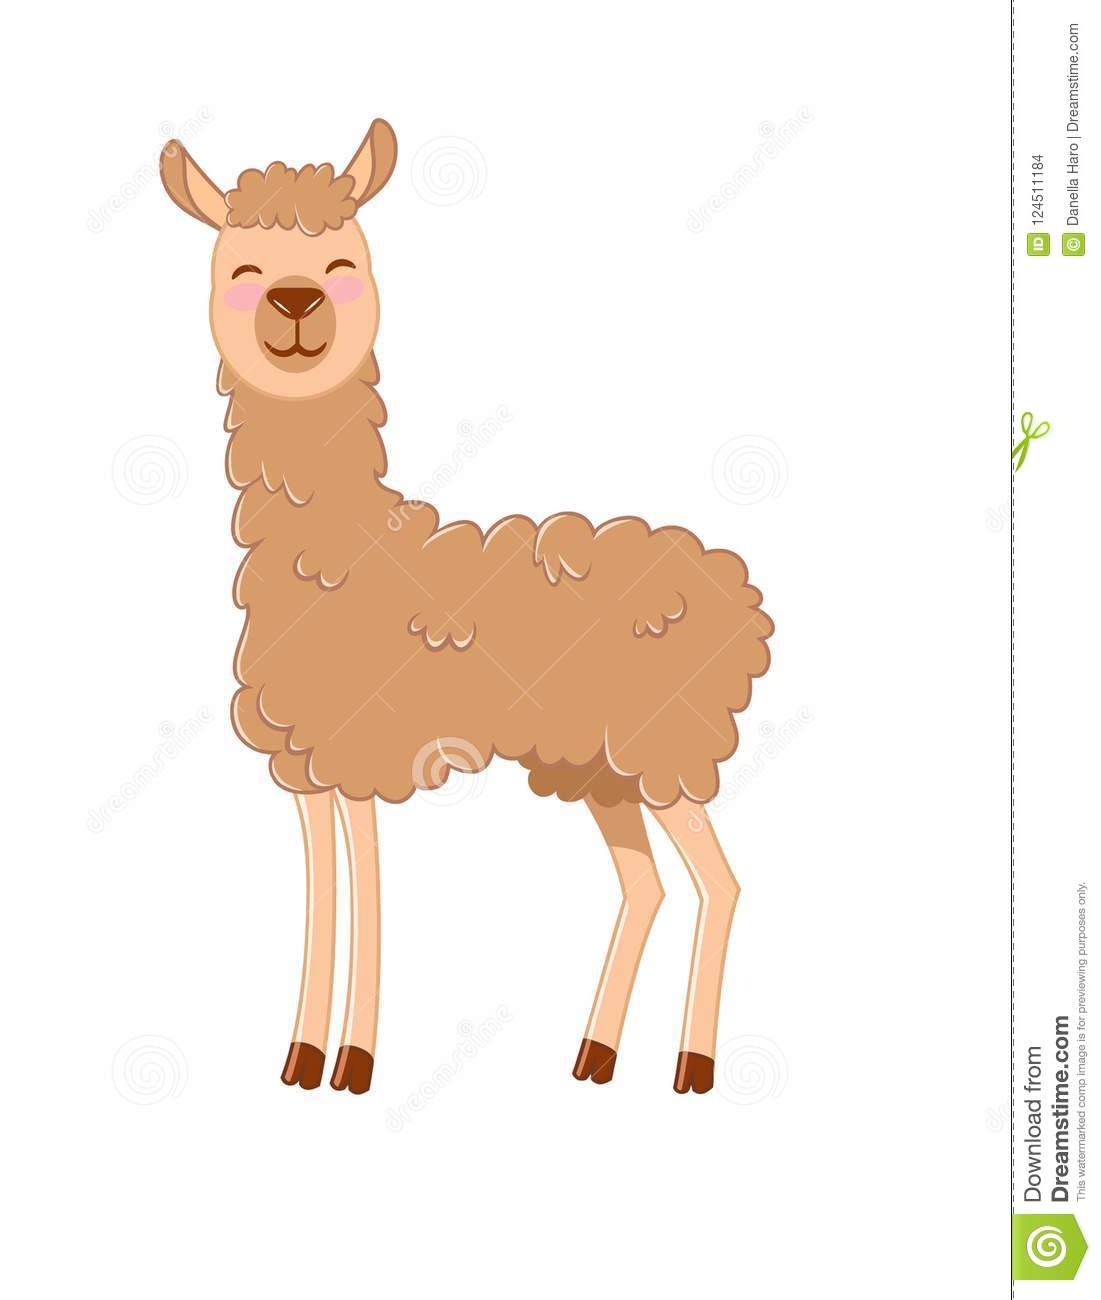 Cute Llama Smiling At You. Happy Llama Clip Art Stock Photo.